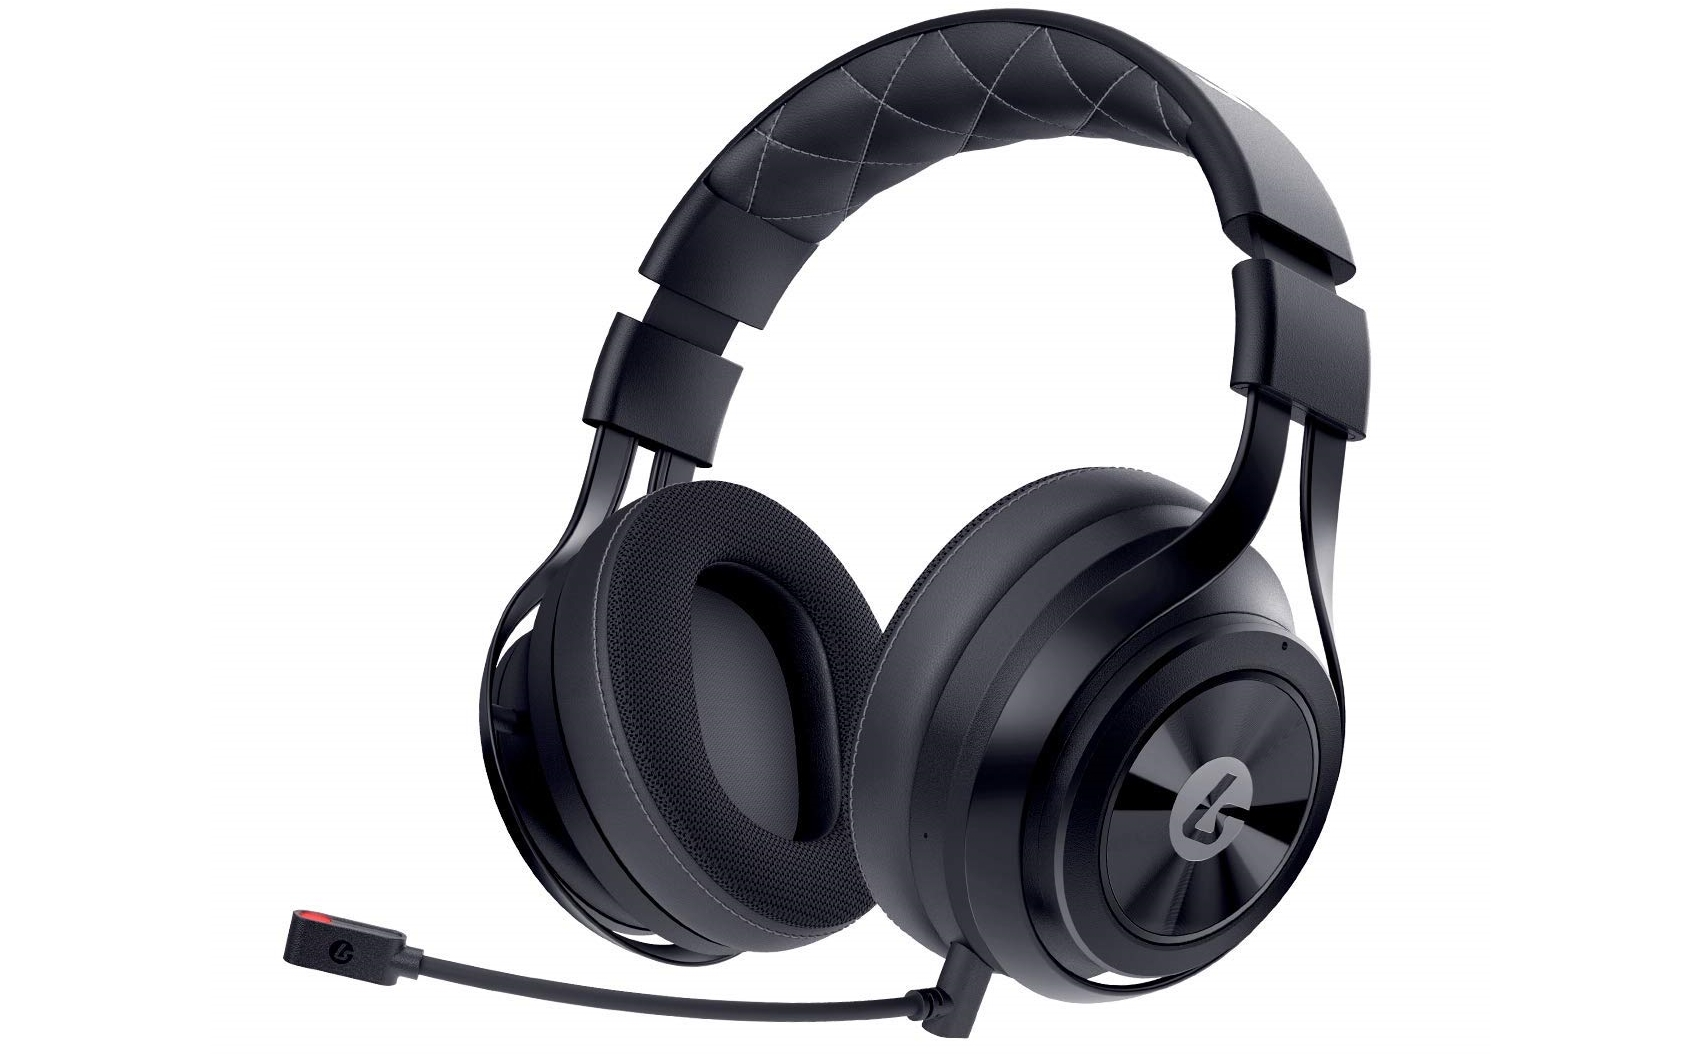 LucidSound LS35X review: the best wireless headset for Xbox One? – Reader's Feature